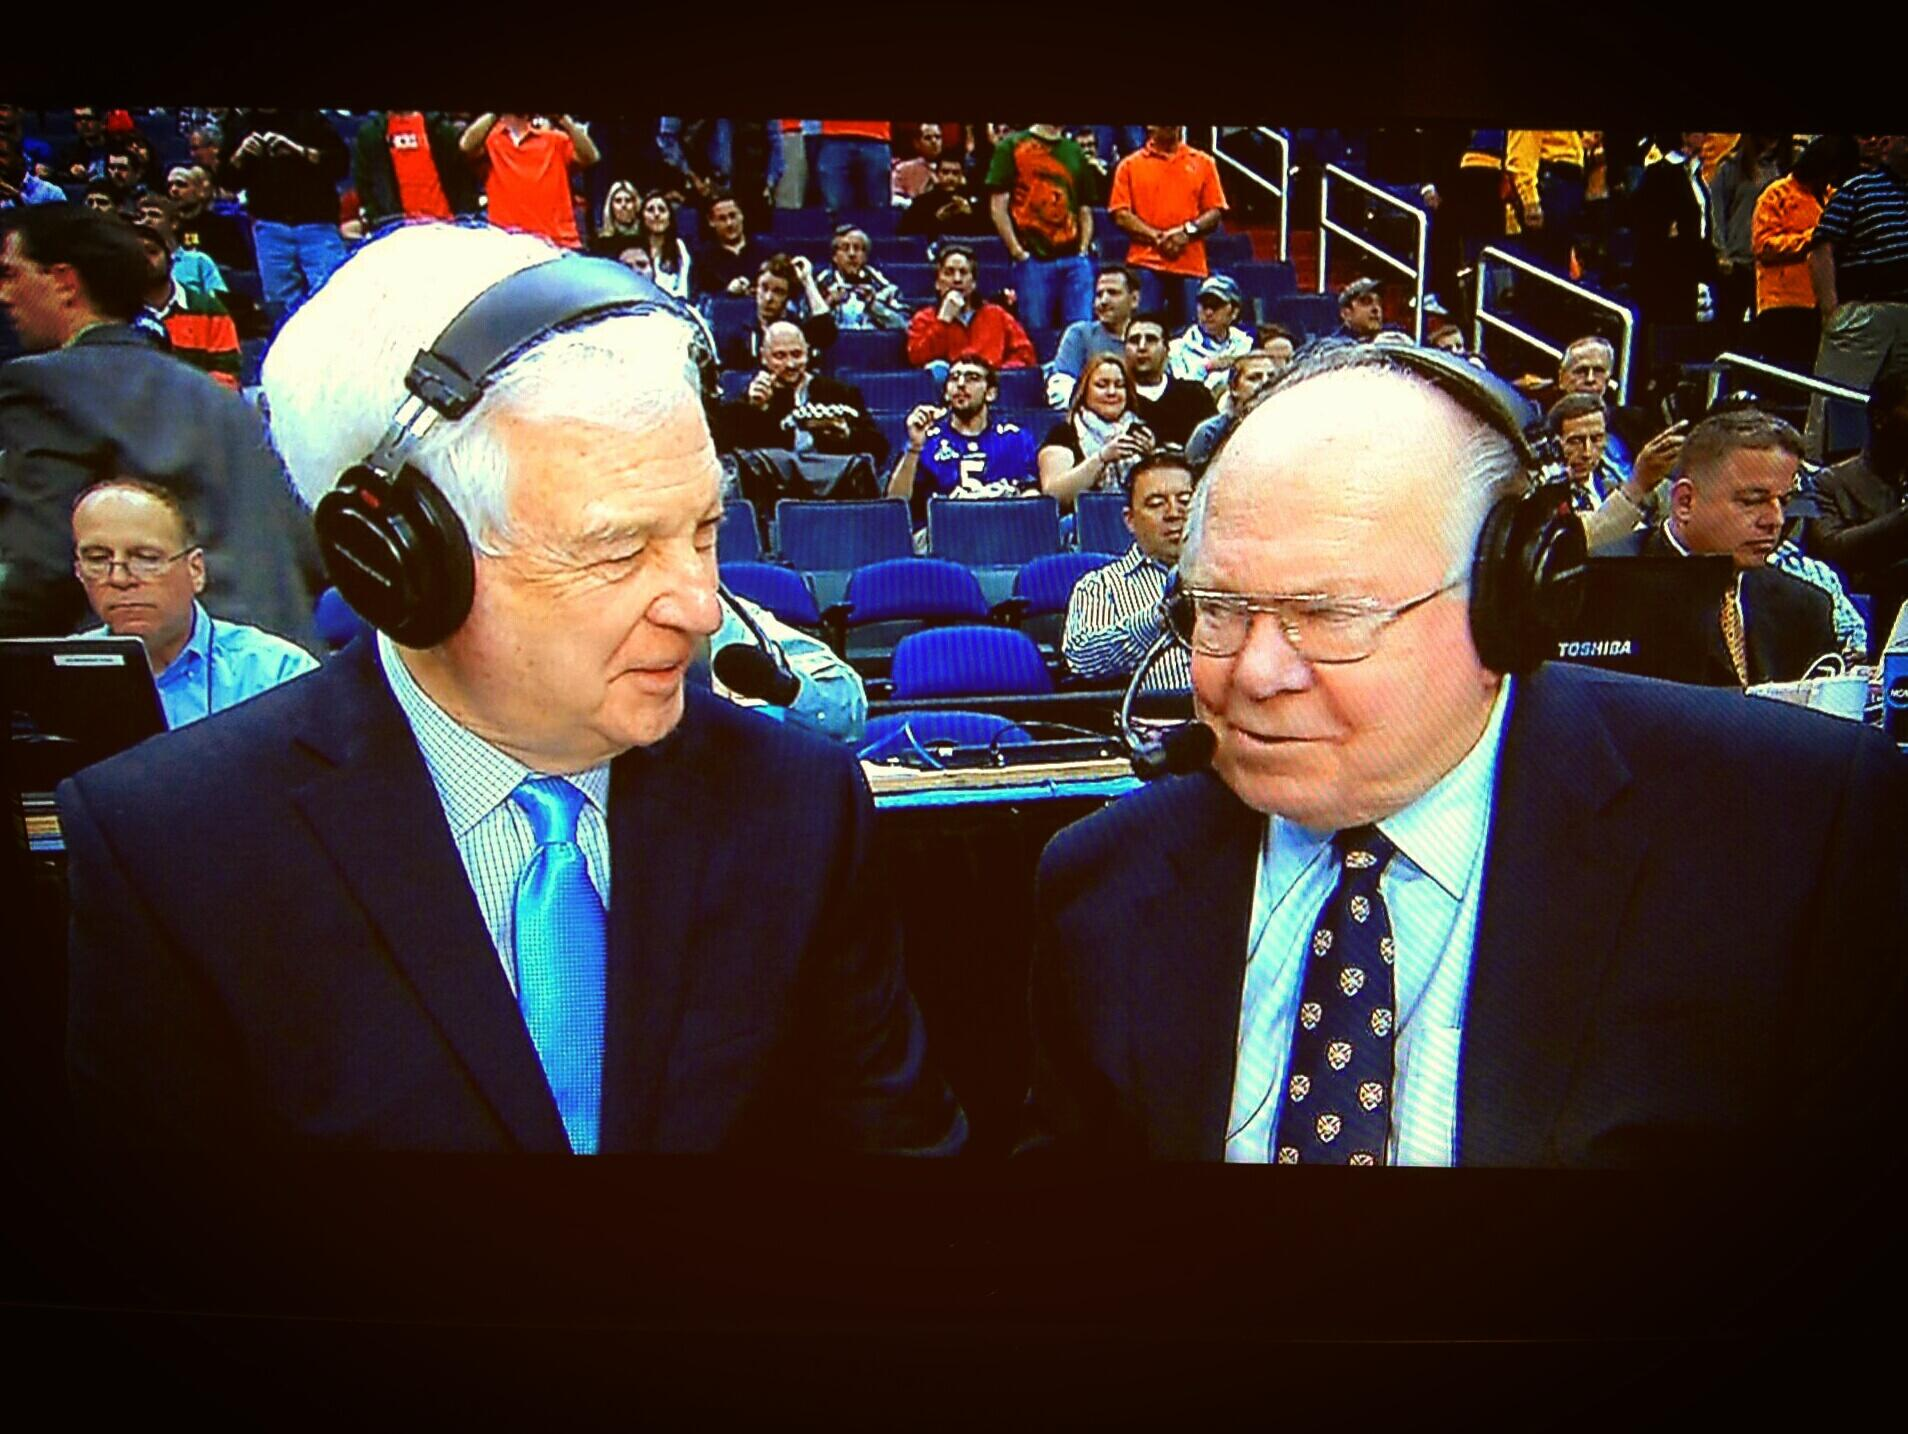 Twitter / HSC1776: Dr. Verne Lundquist sporting ...